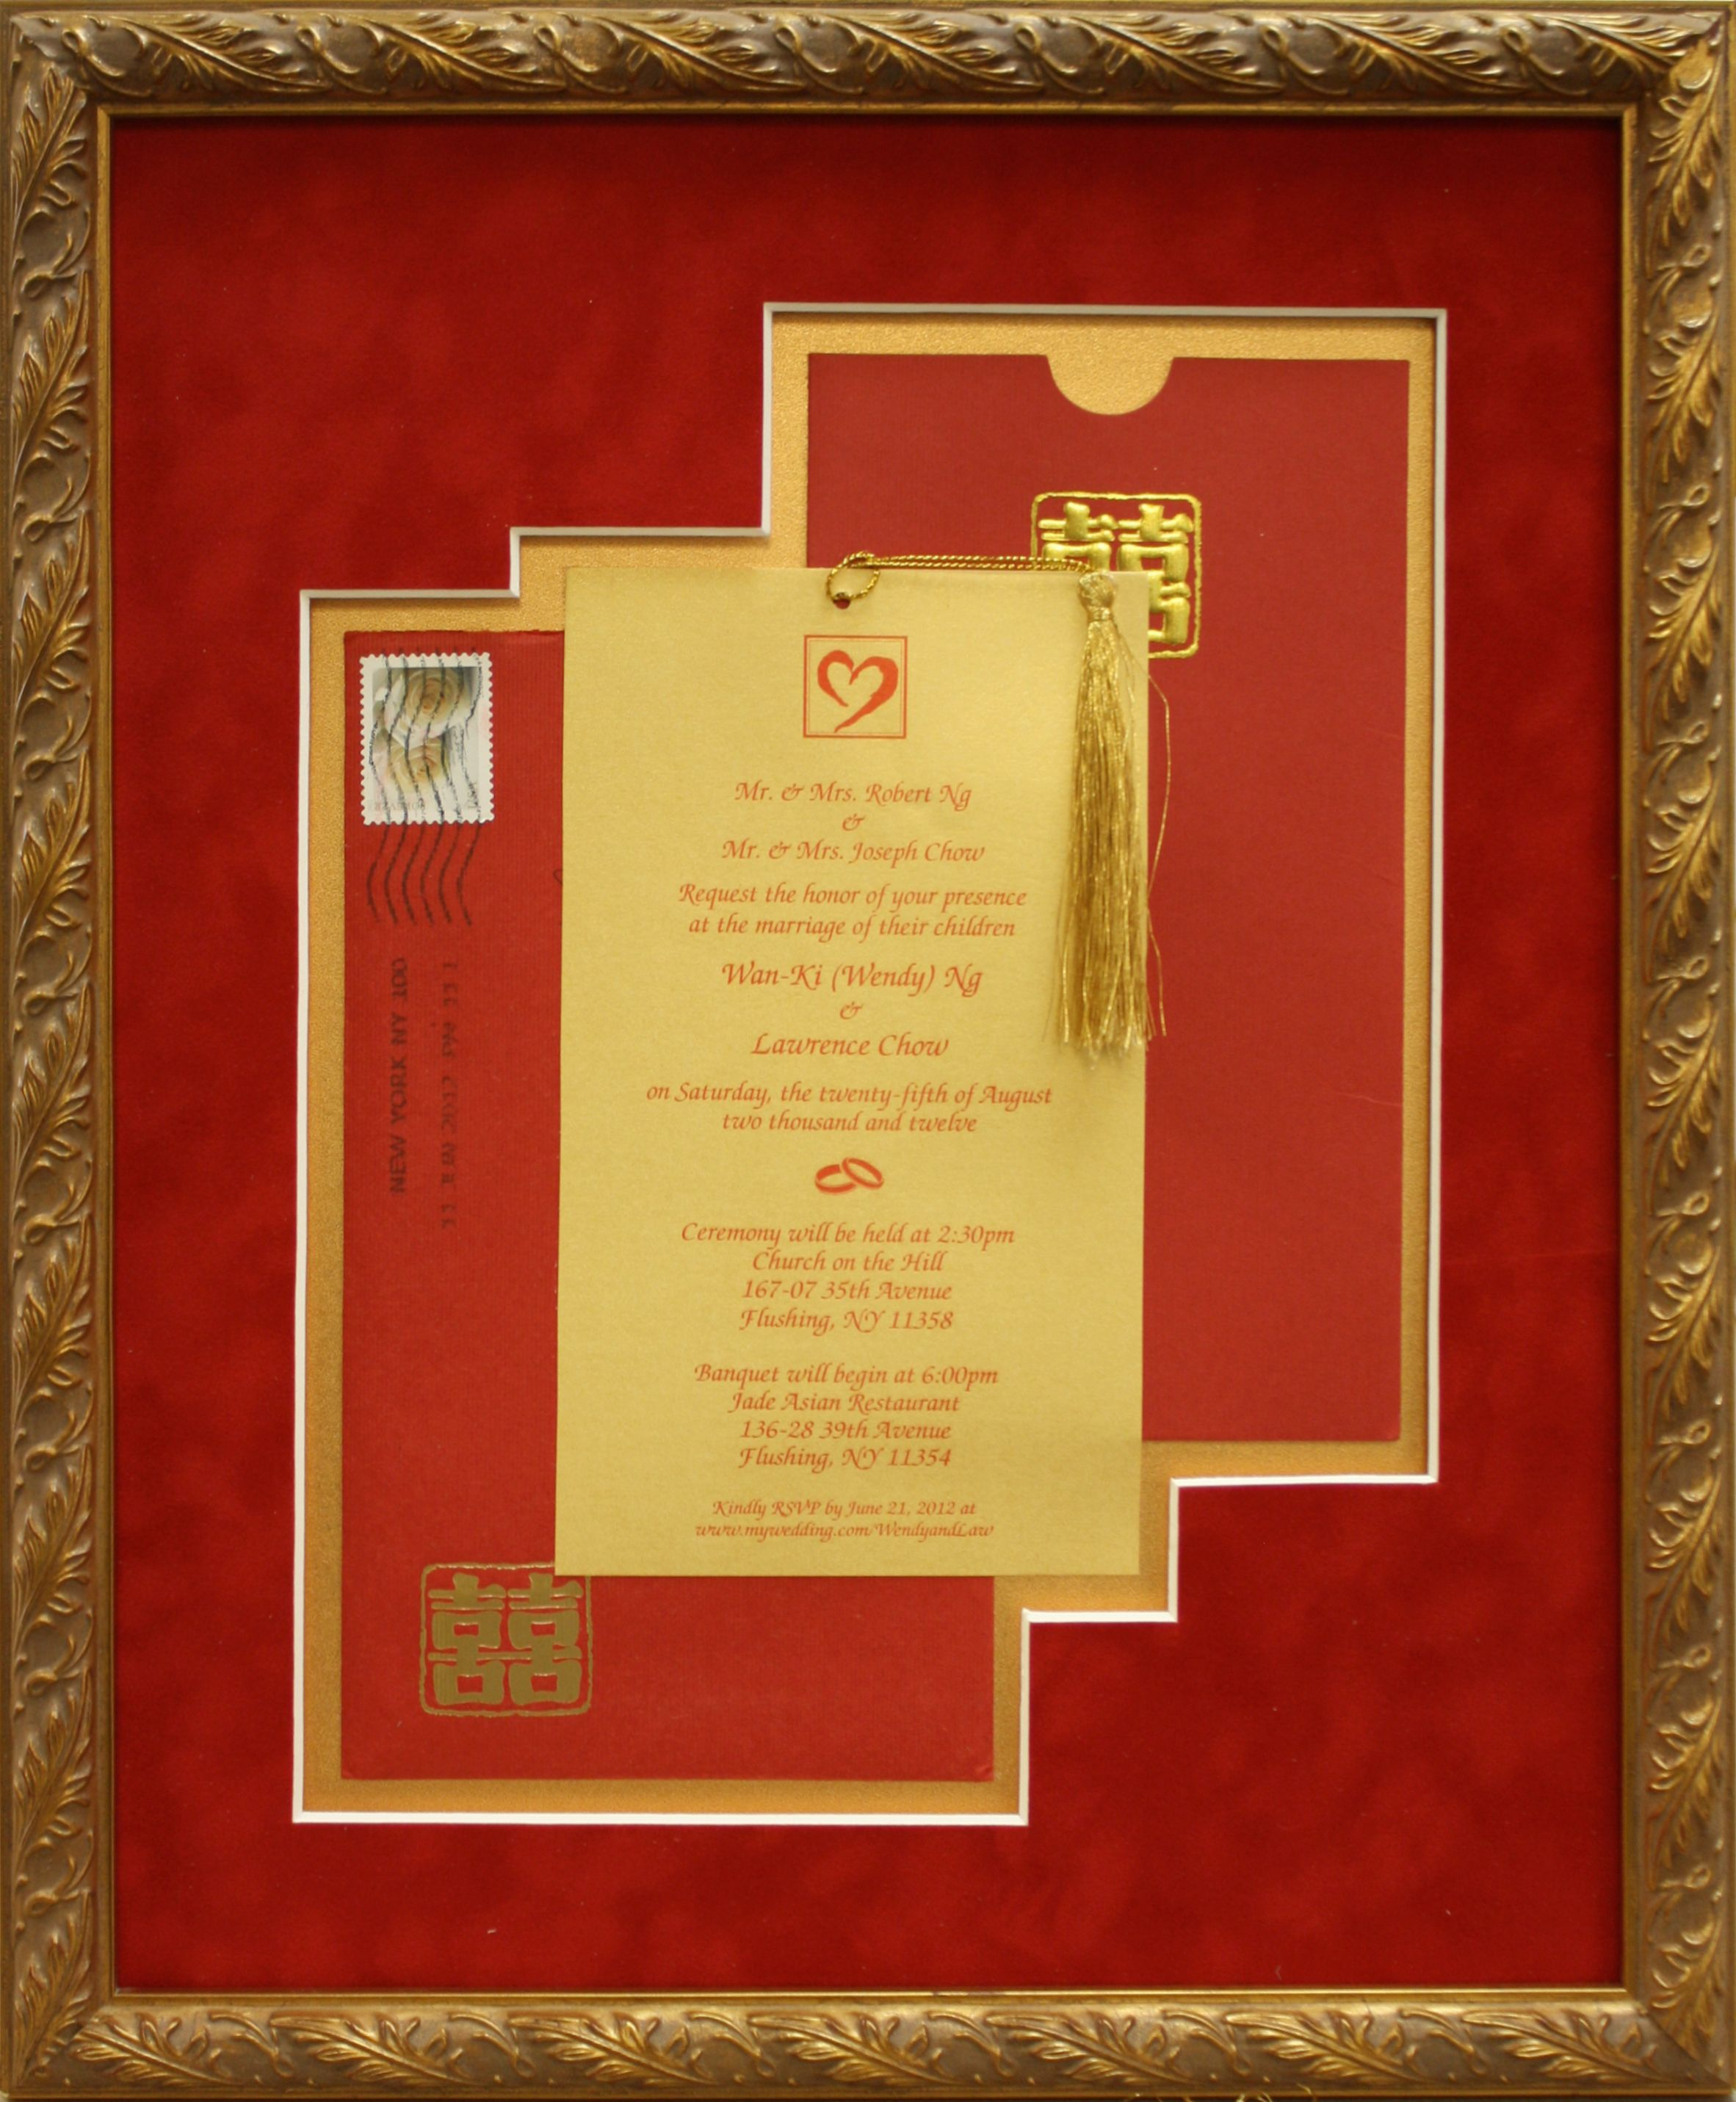 Wedding invitation framed in Chinese red suede mat board and 24k ...